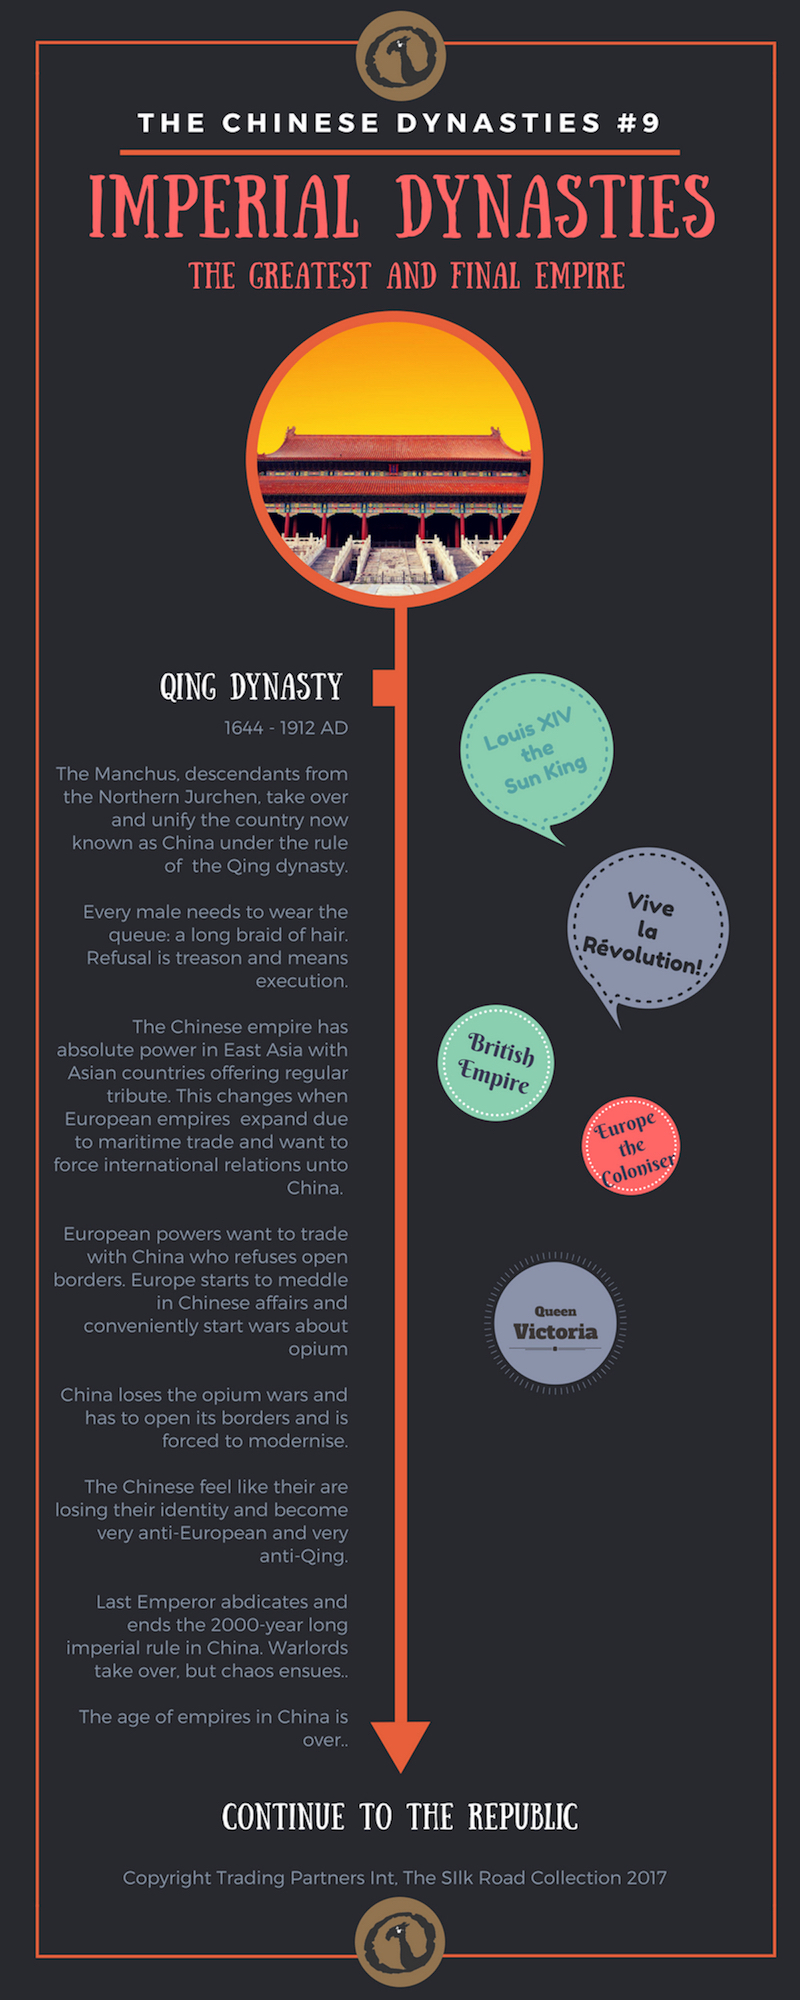 Timeline image of The Chinese Dynasties: Imperial Dynasties - The greatest and final empire